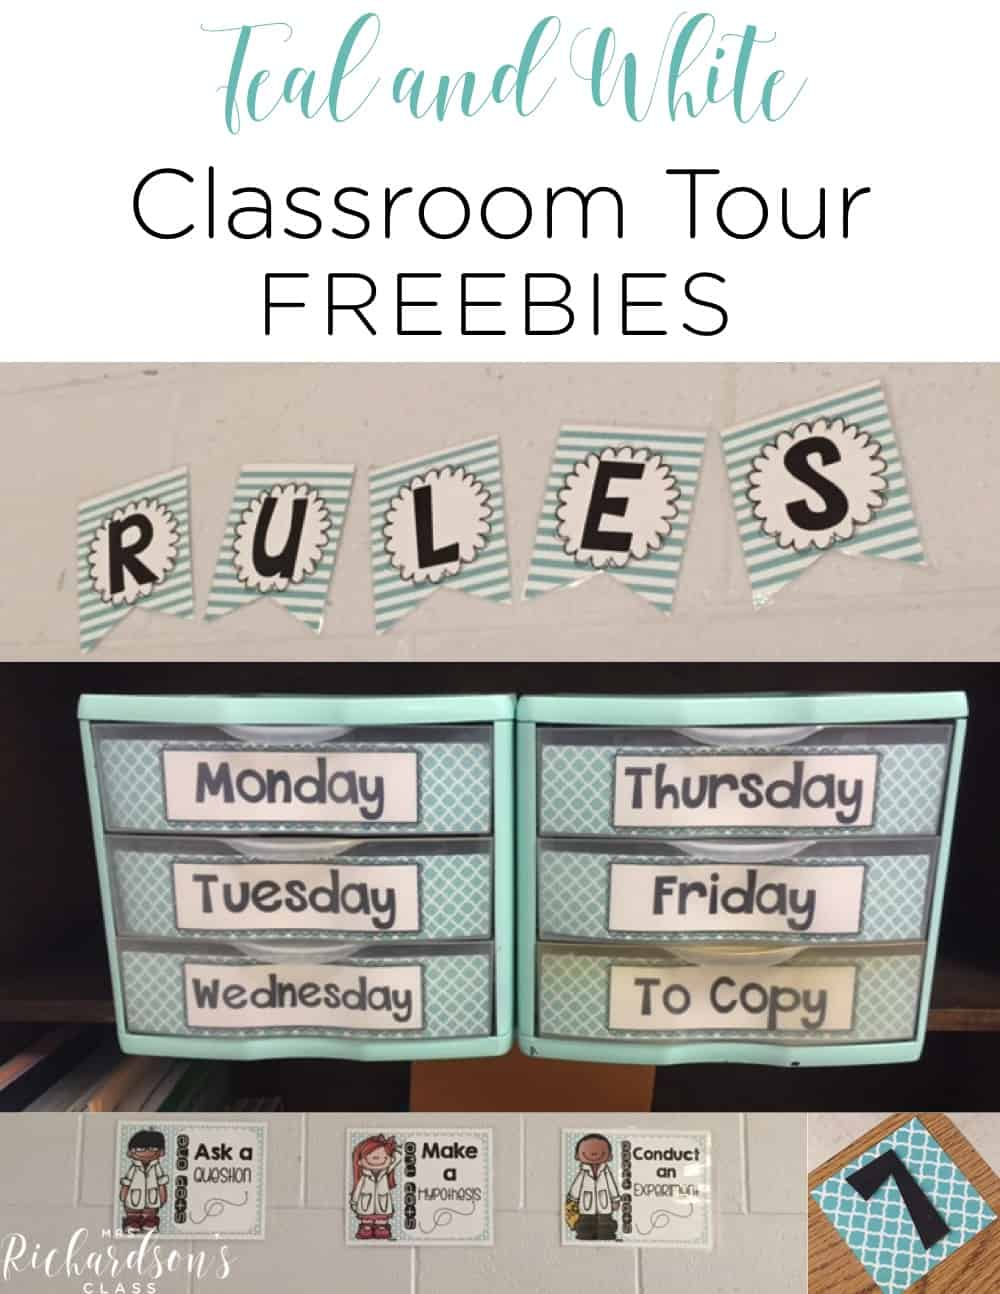 Teal and white classroom ideas and FREEBIES that will help you get organized and be set for the year! #classroomorganization #middle #elementary #middleschool #free #printables